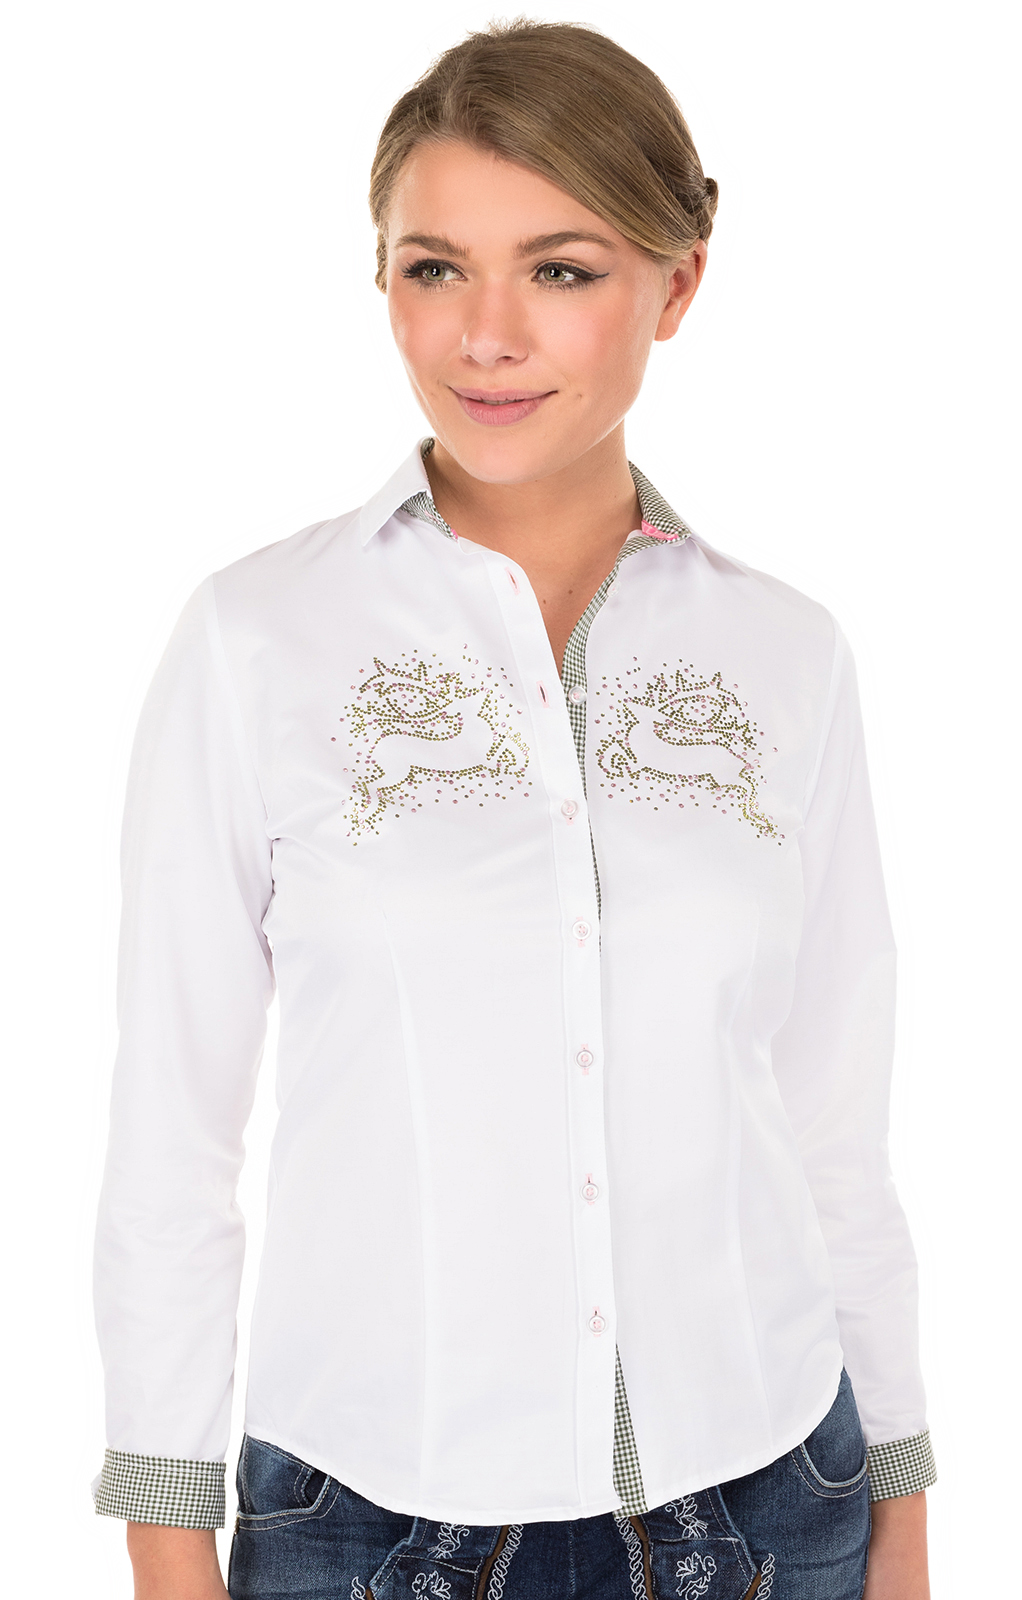 Traditional blouse 350063-2879-1white von OS-Trachten